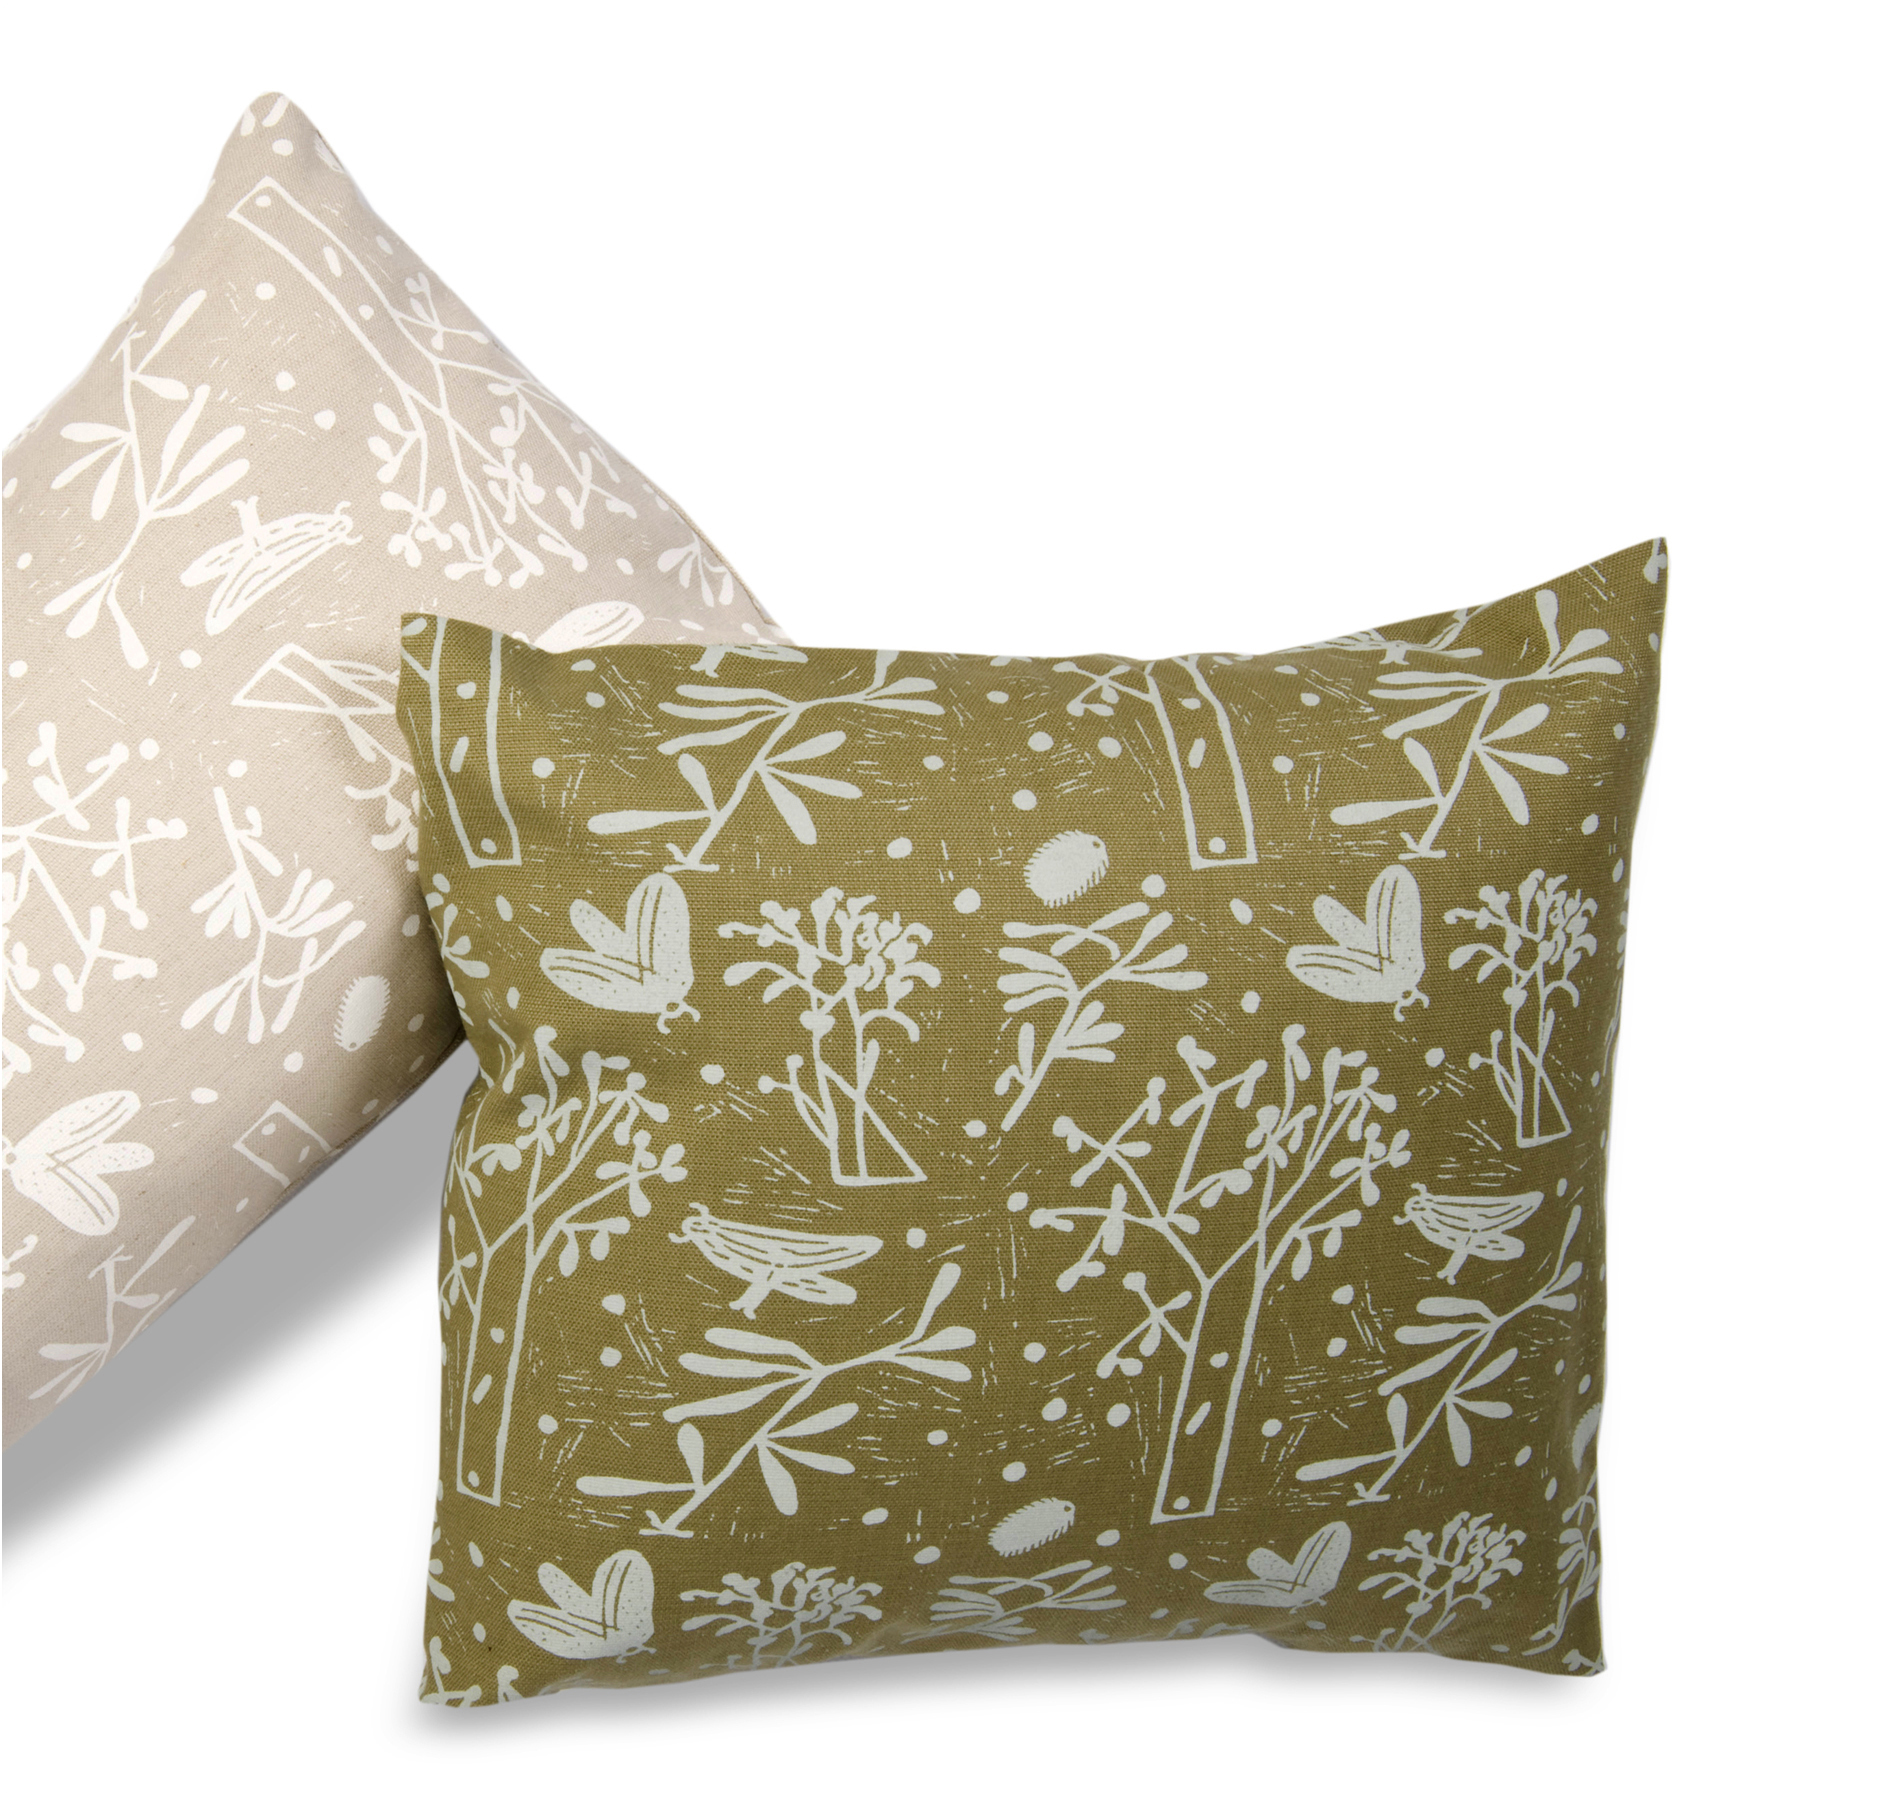 "New cushions from the Textil collection ""San fabrics and cushions"""